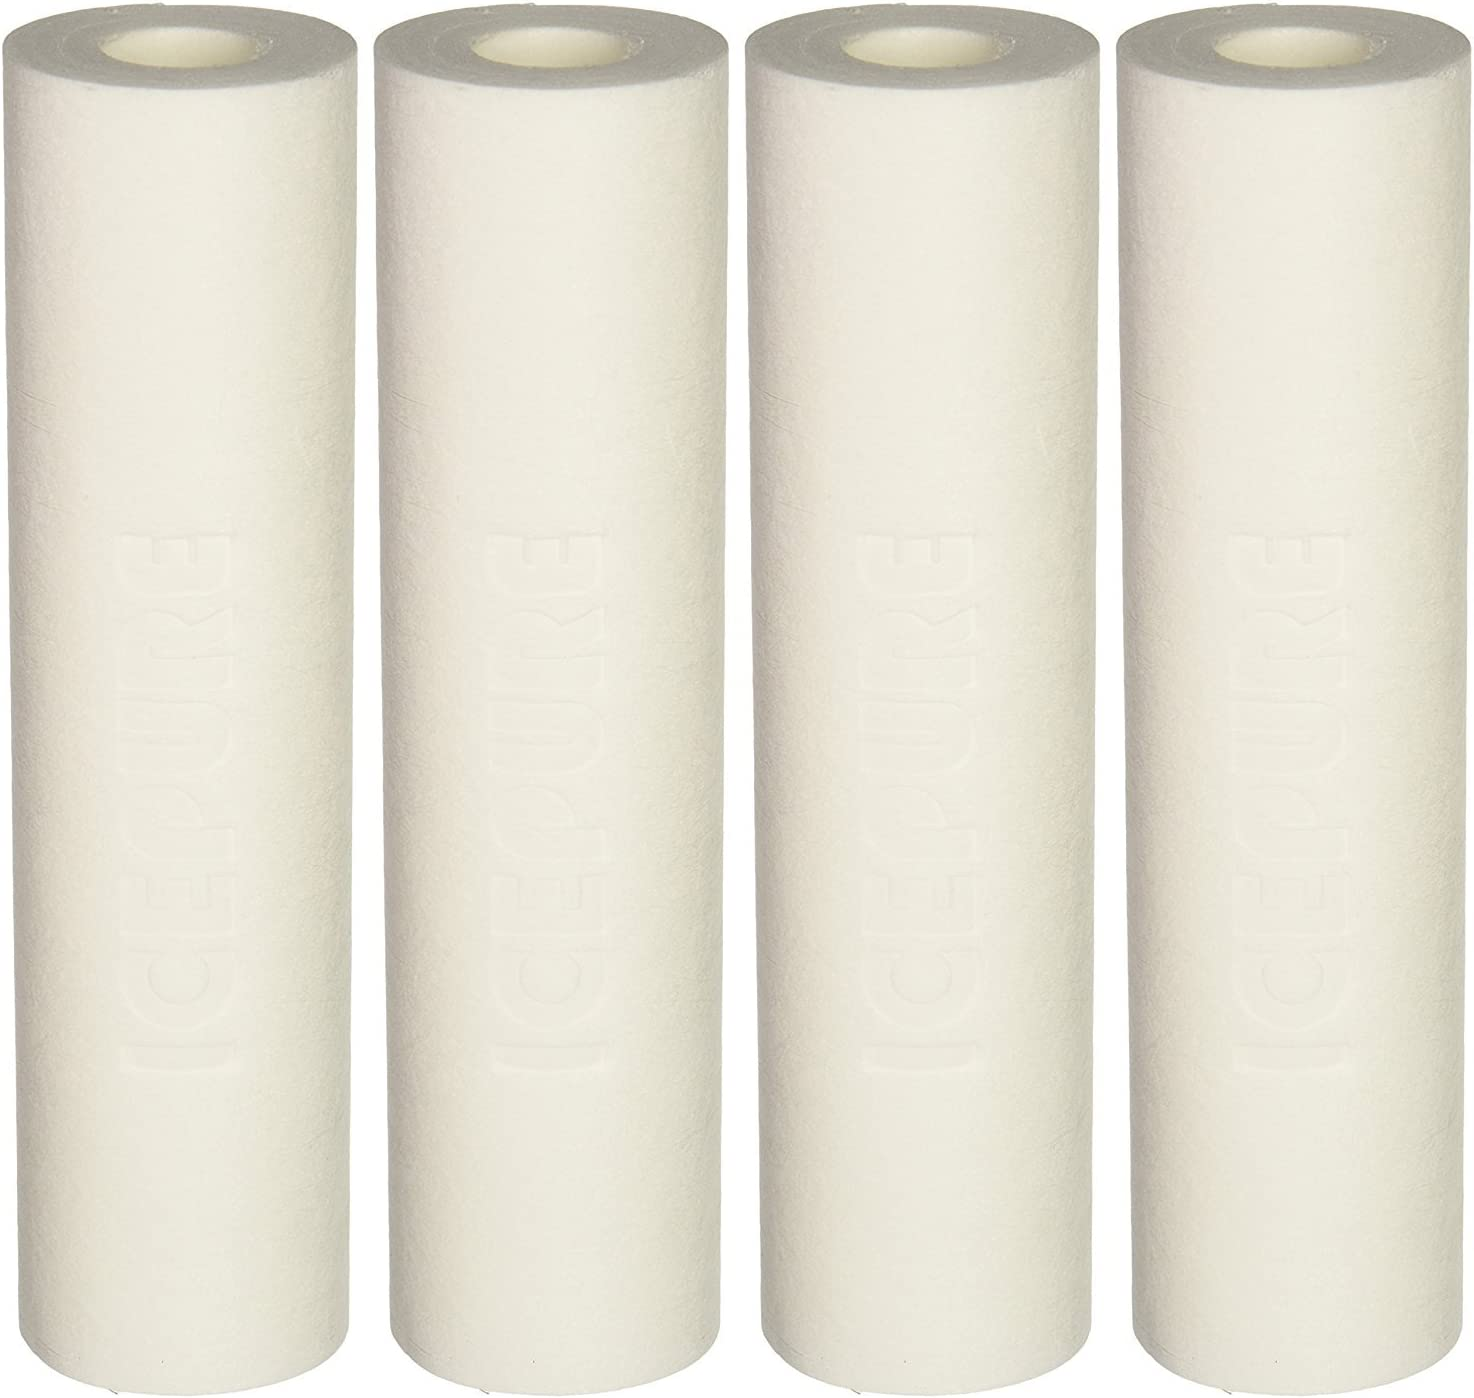 4-Pack -Compatible for P5-D , P5A Sediment Water Filter Cartridge - Also Replaces, Aqua-Pure AP110 & AP110-NP, GE FXUSC, Whirlpool WHKF-GD05 WFPFC5002 by CFS